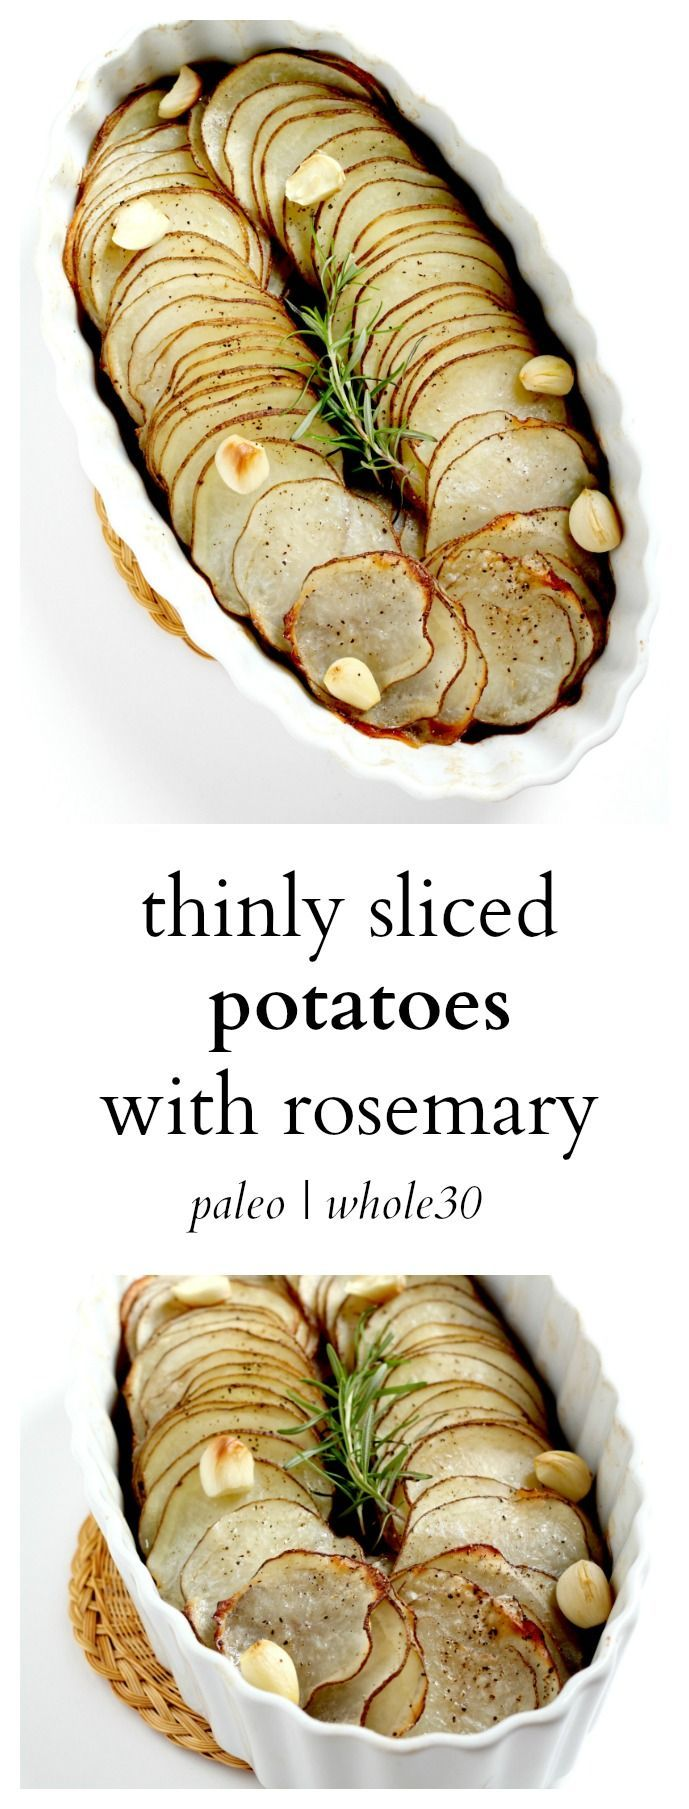 These potatoes topped with rosemary and garlic are flavor and so crispy! They are a great whole 30 potatoes recipe that go with almost any entree.